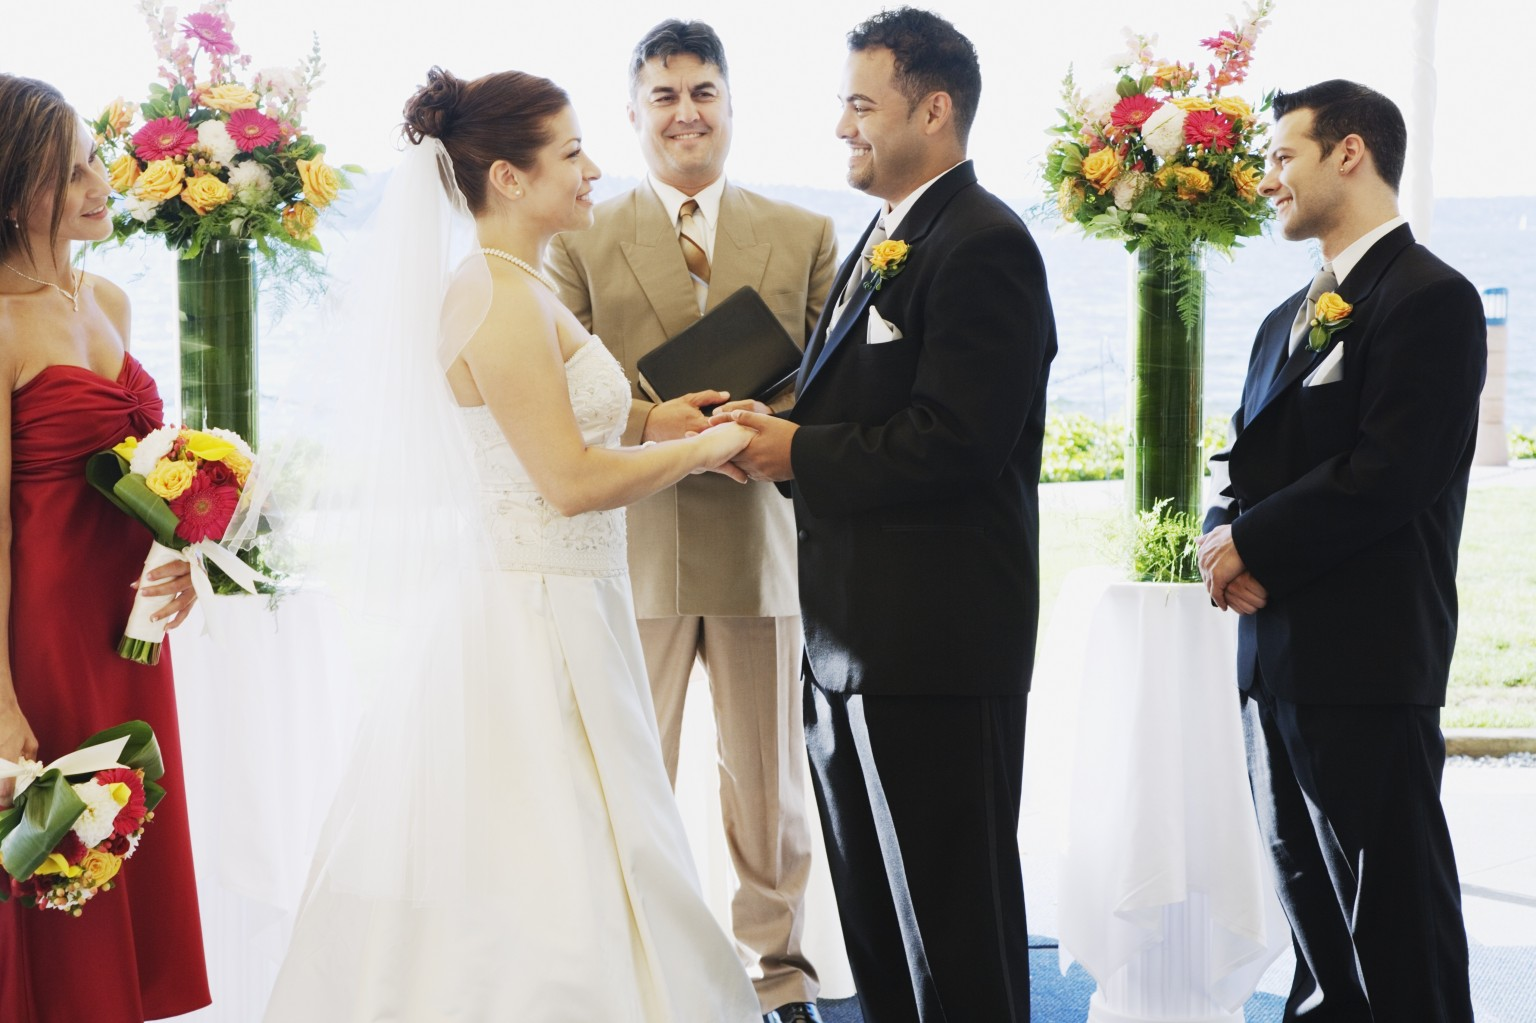 10 Questions To Ask When Interviewing An Officiant